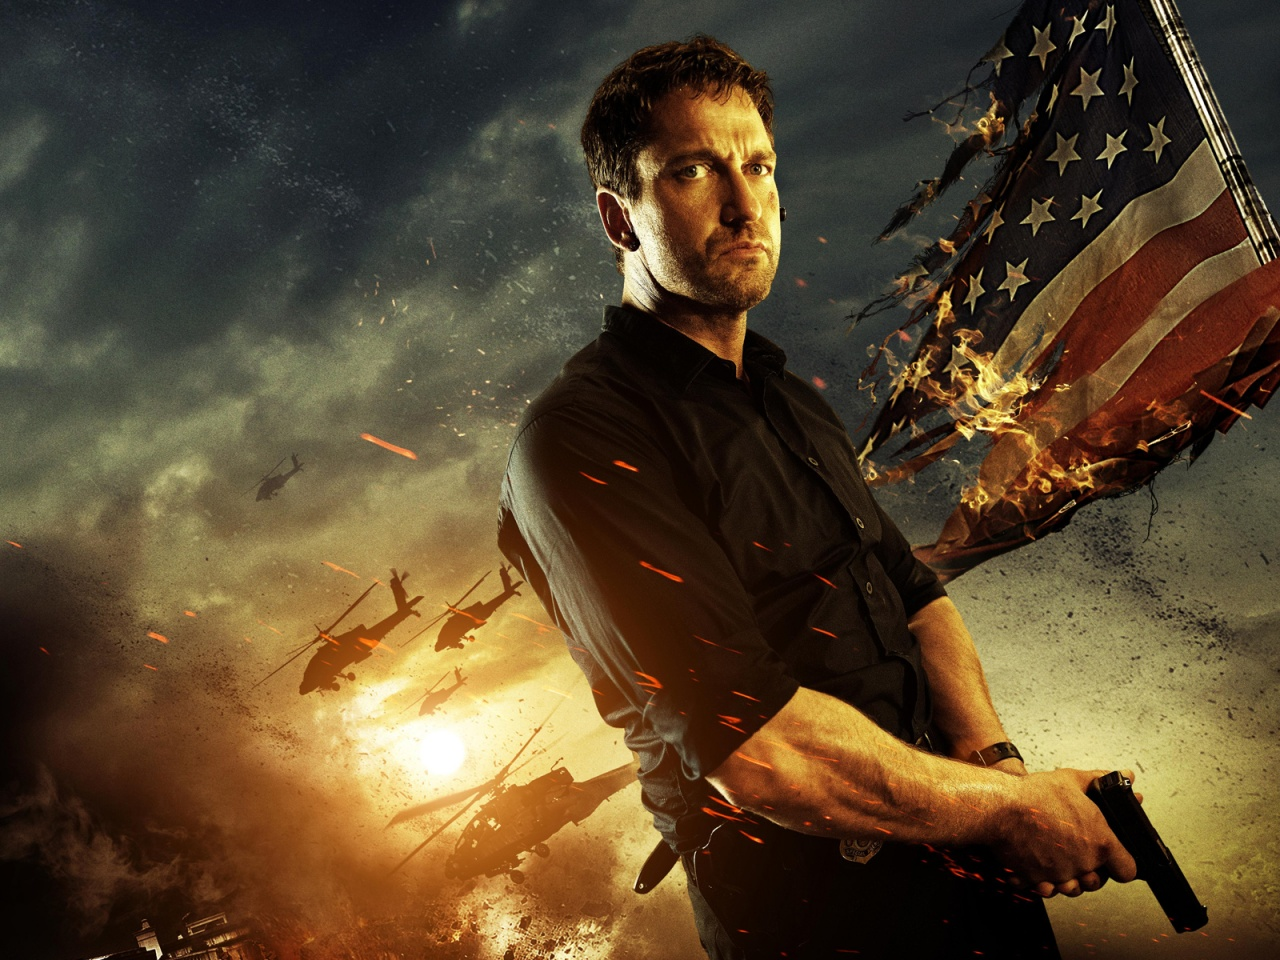 Gerard Butler in Olympus Has Fallen Wallpapers HD Wallpapers 1280x960